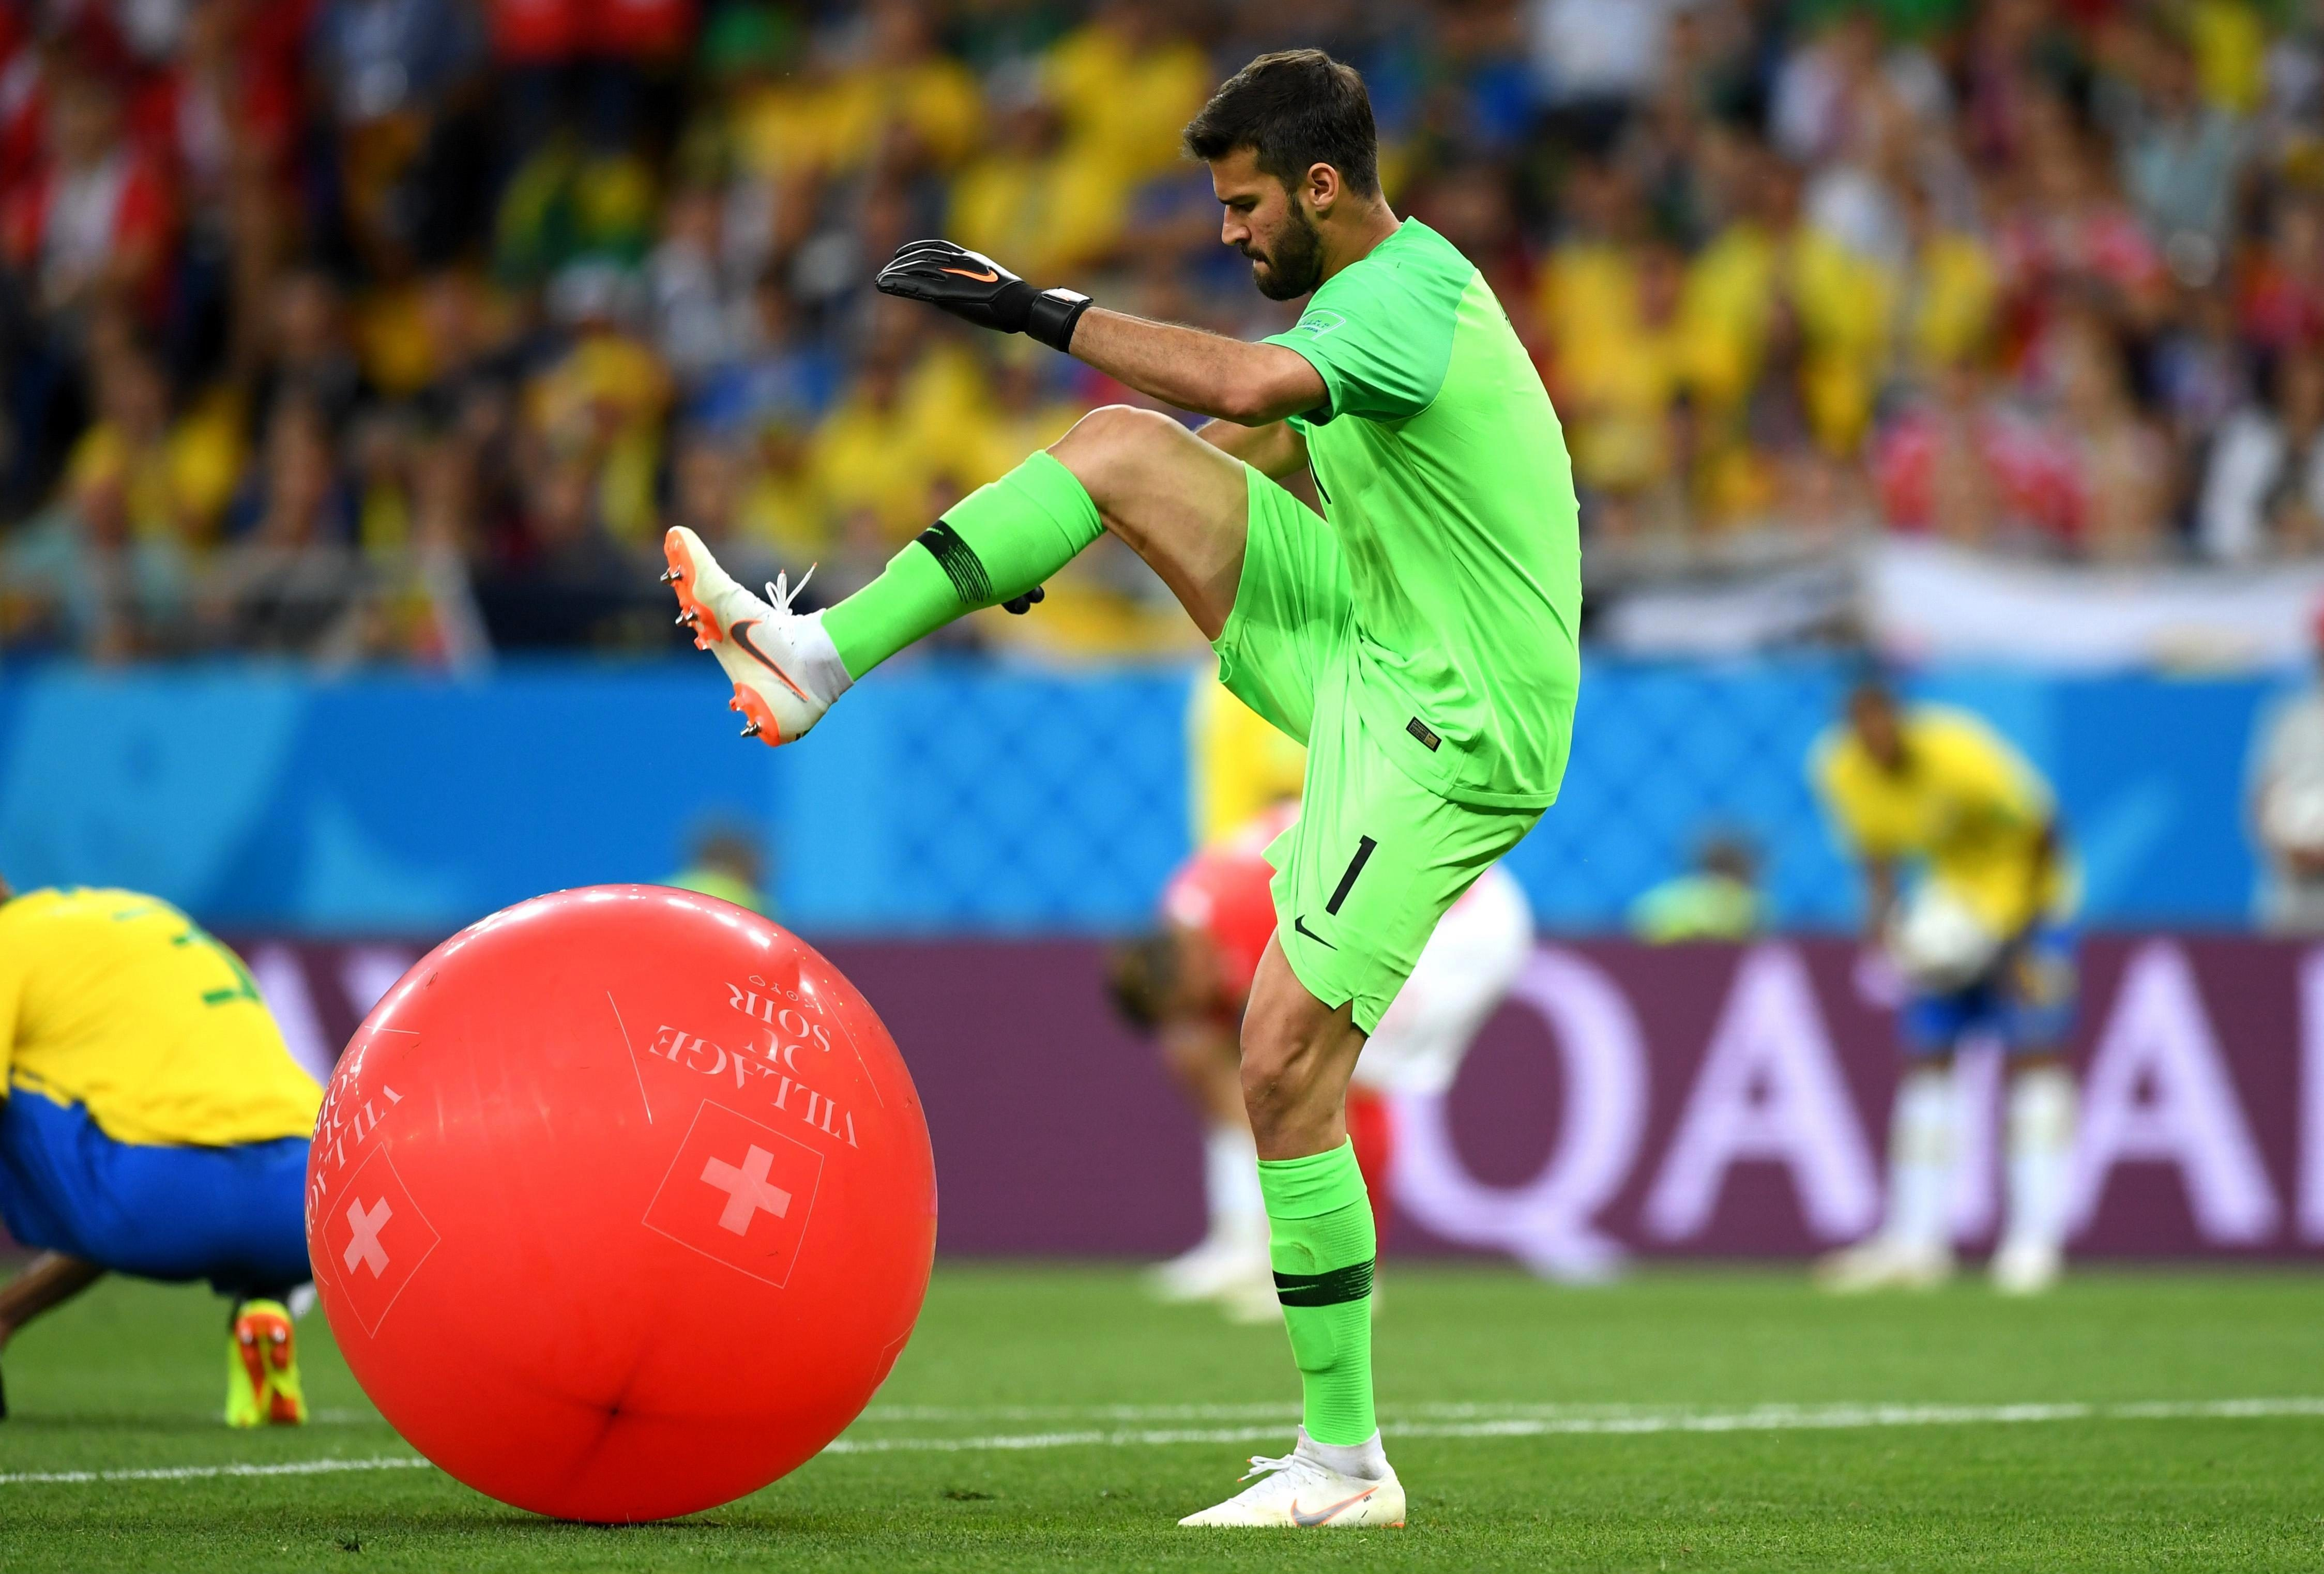 He passed the beach ball test CC: Liverpool